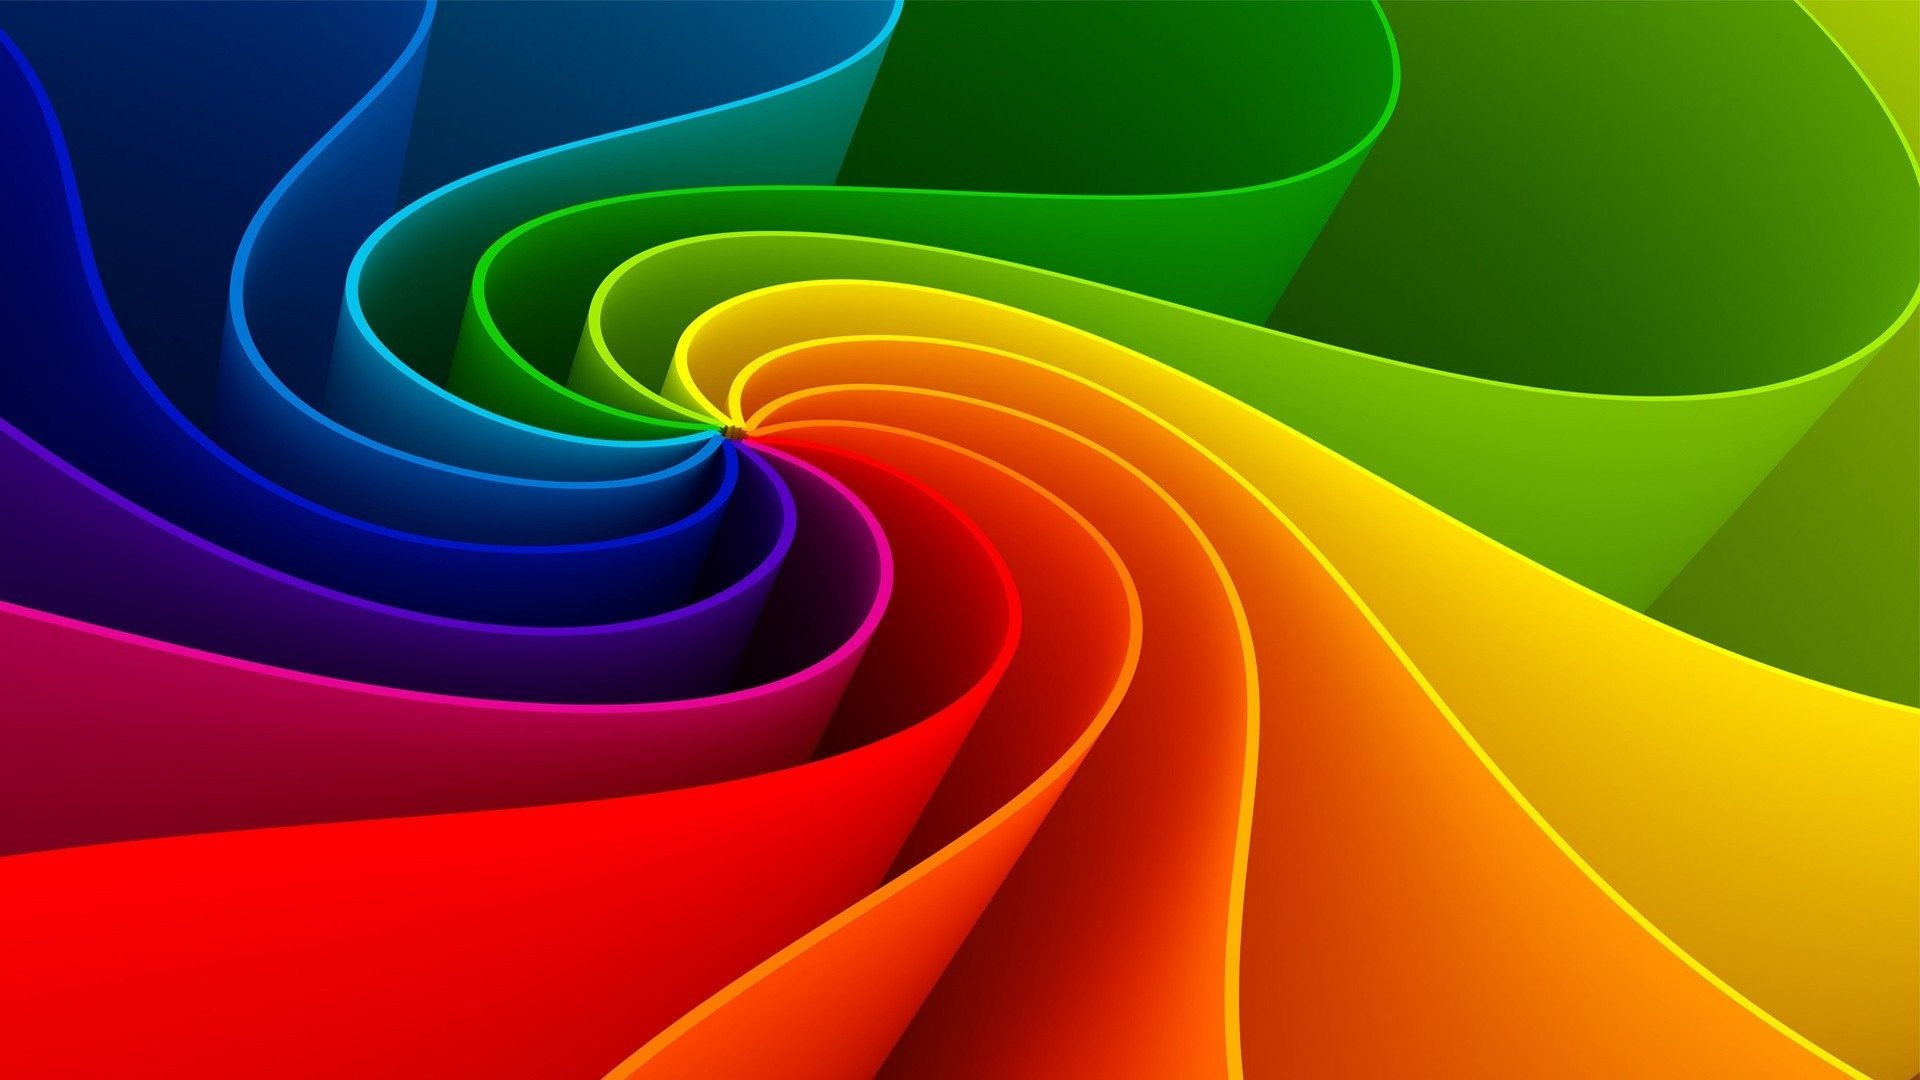 Abstract Rainbow Wallpapers HD Wallpaper 3D Abstract Wallpapers 1920x1080